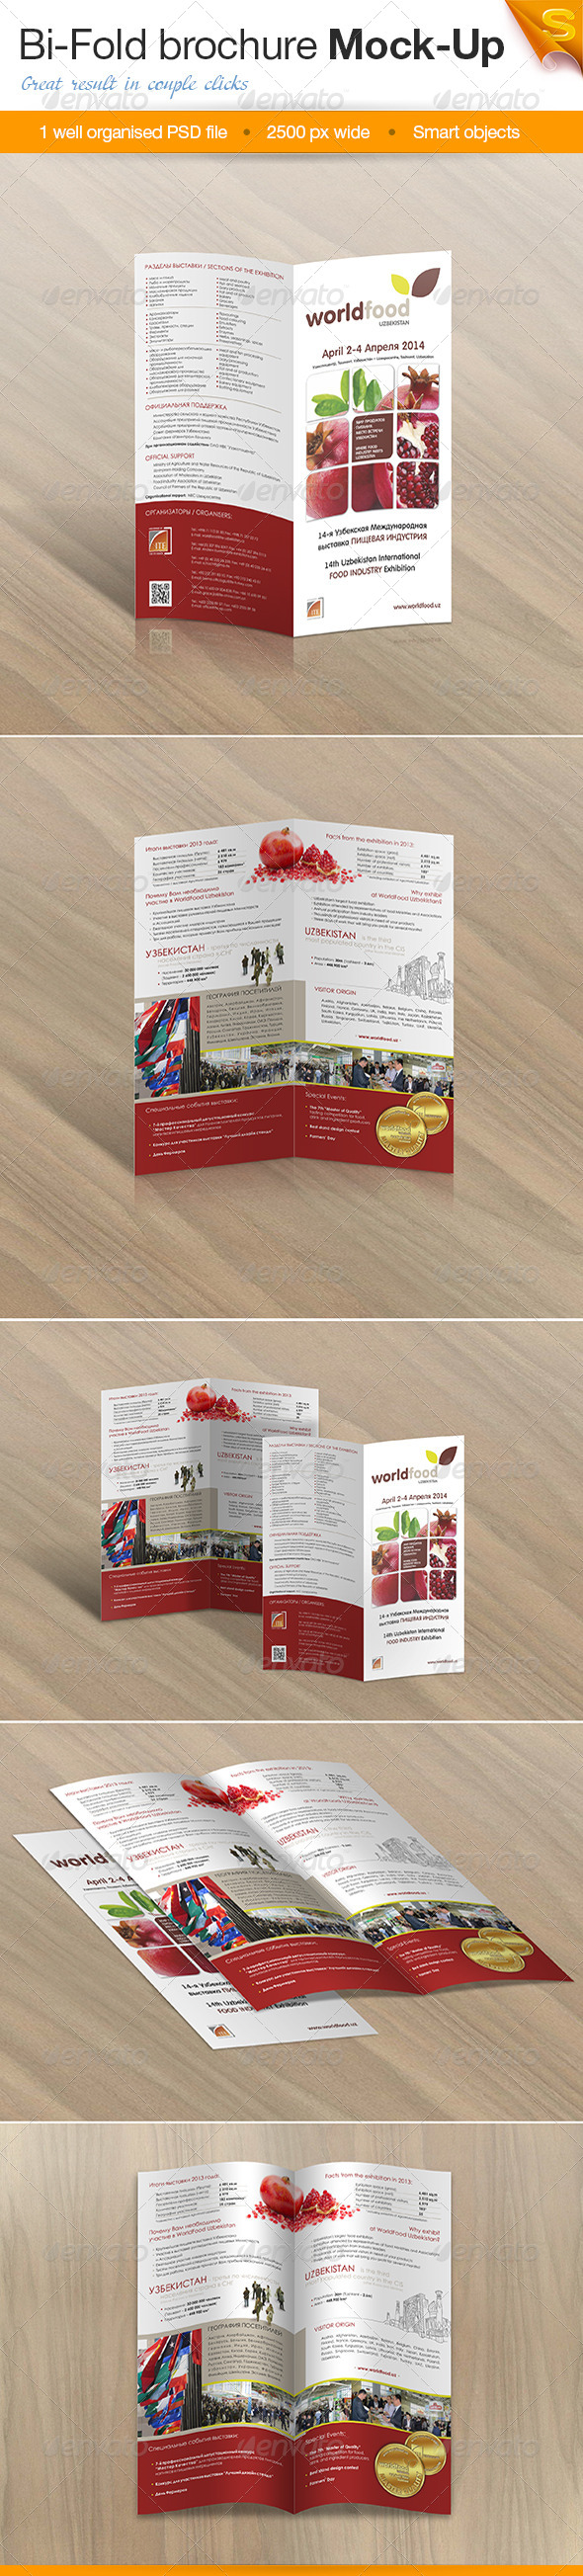 GraphicRiver Bi-Fold Brochure Mock-Up 8083266